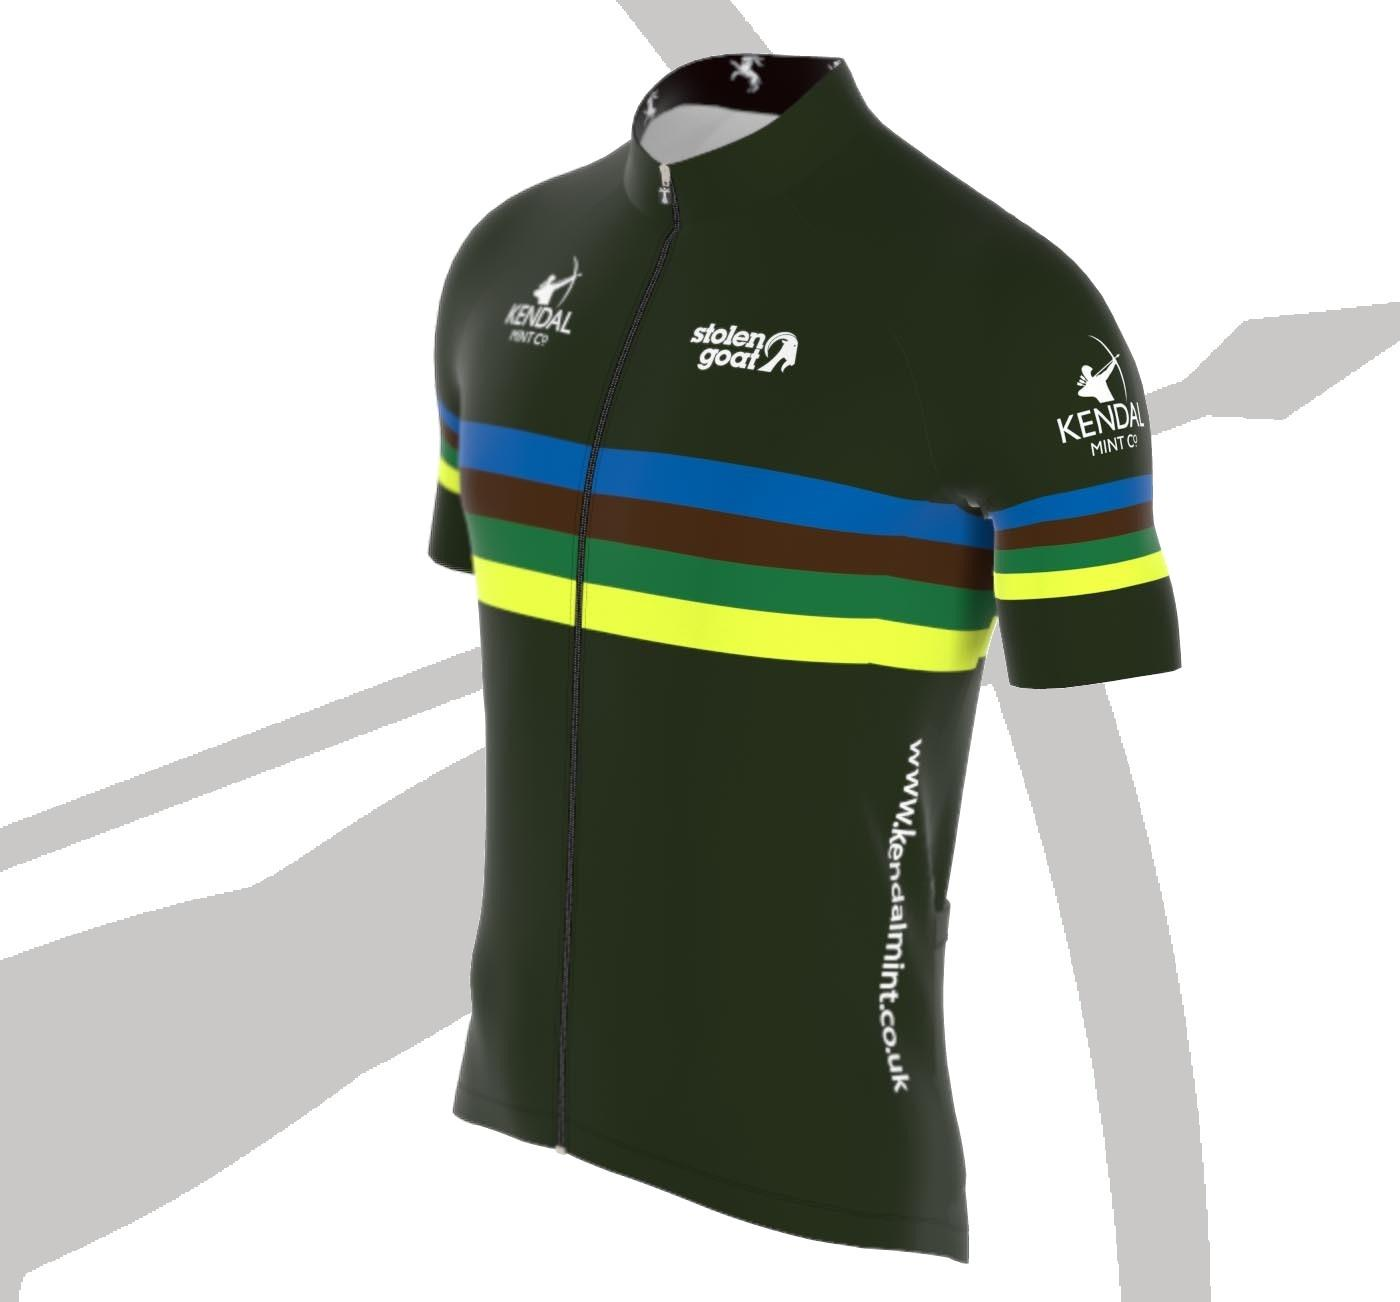 Kendal Mint X SG Bodyline Cycling Jersey Men's (Limited Stock)